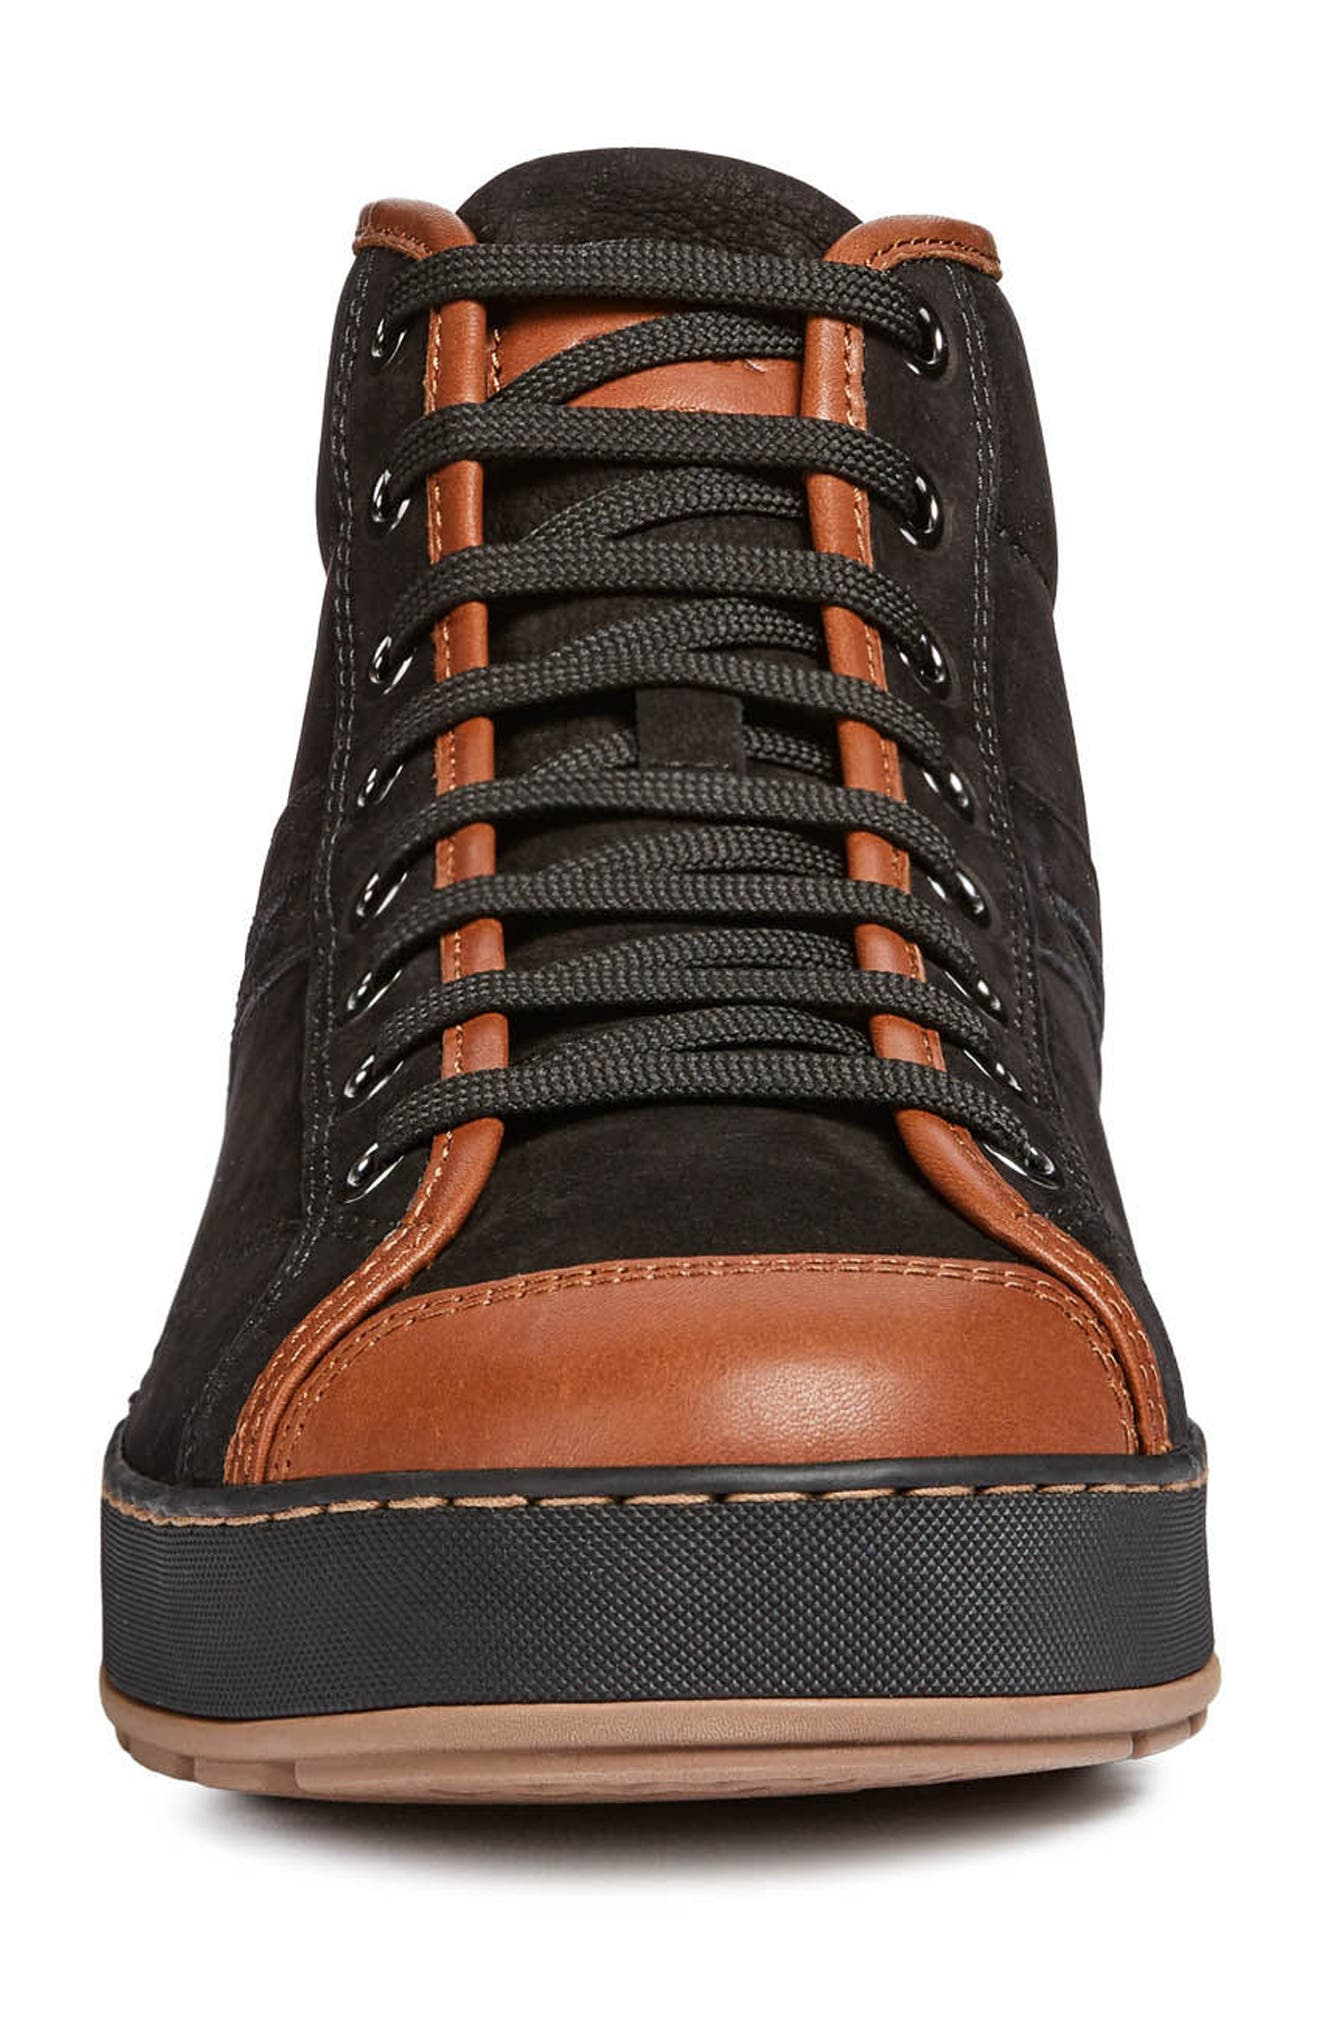 Ariam High Top Sneaker,                             Alternate thumbnail 4, color,                             203